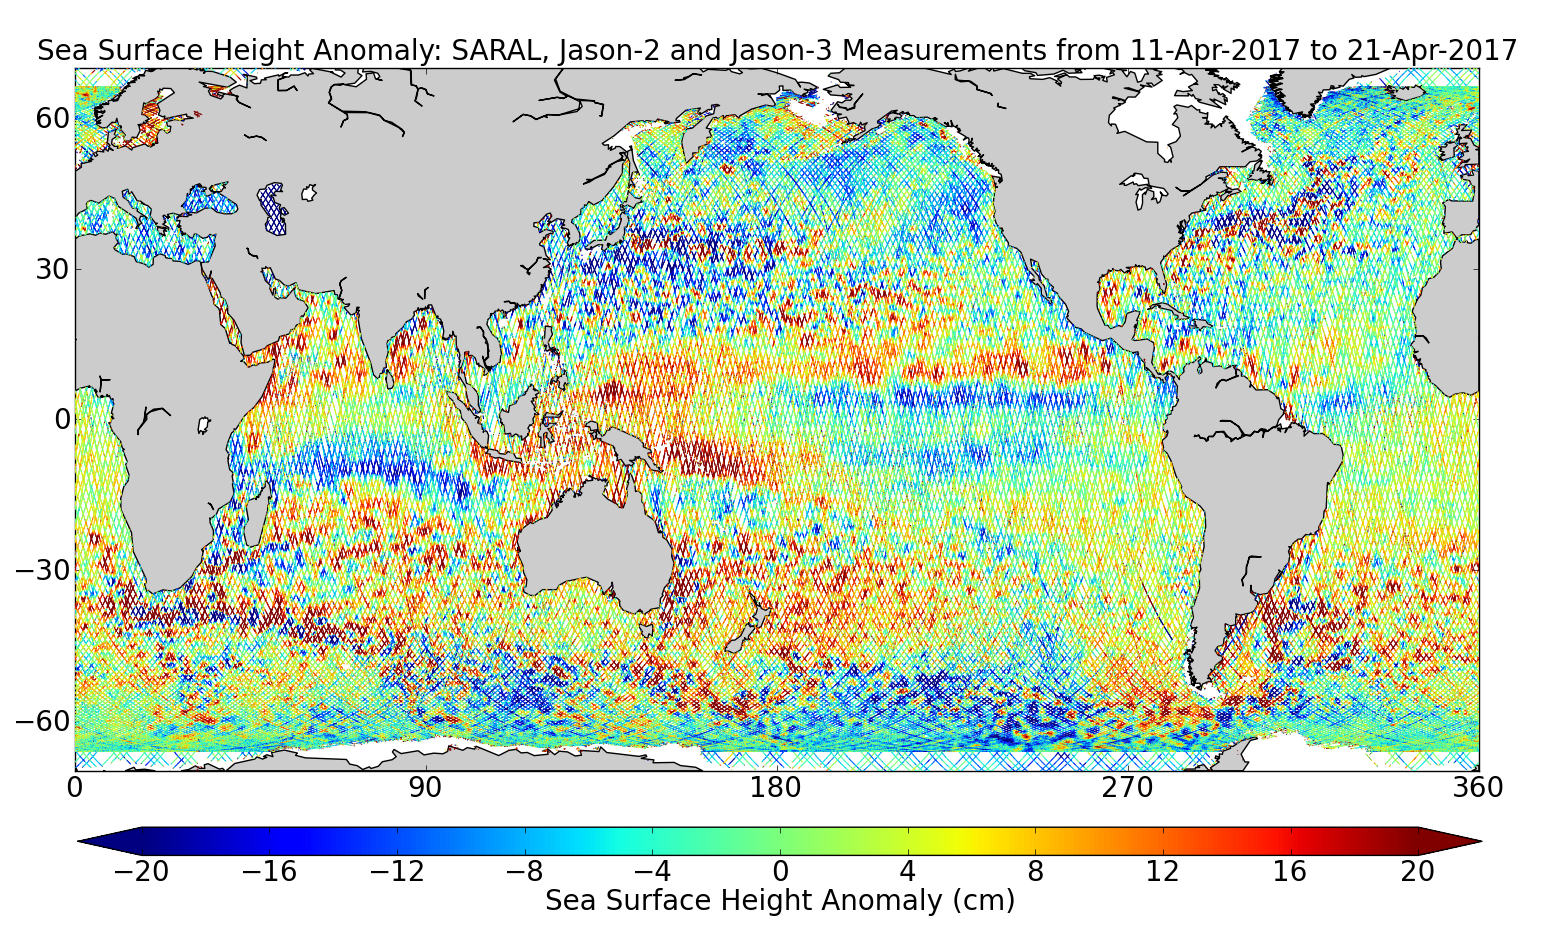 Sea Surface Height Anomaly: SARAL, Jason-2 and Jason-3 Measurements from 11-Apr-2017 to 21-Apr-2017